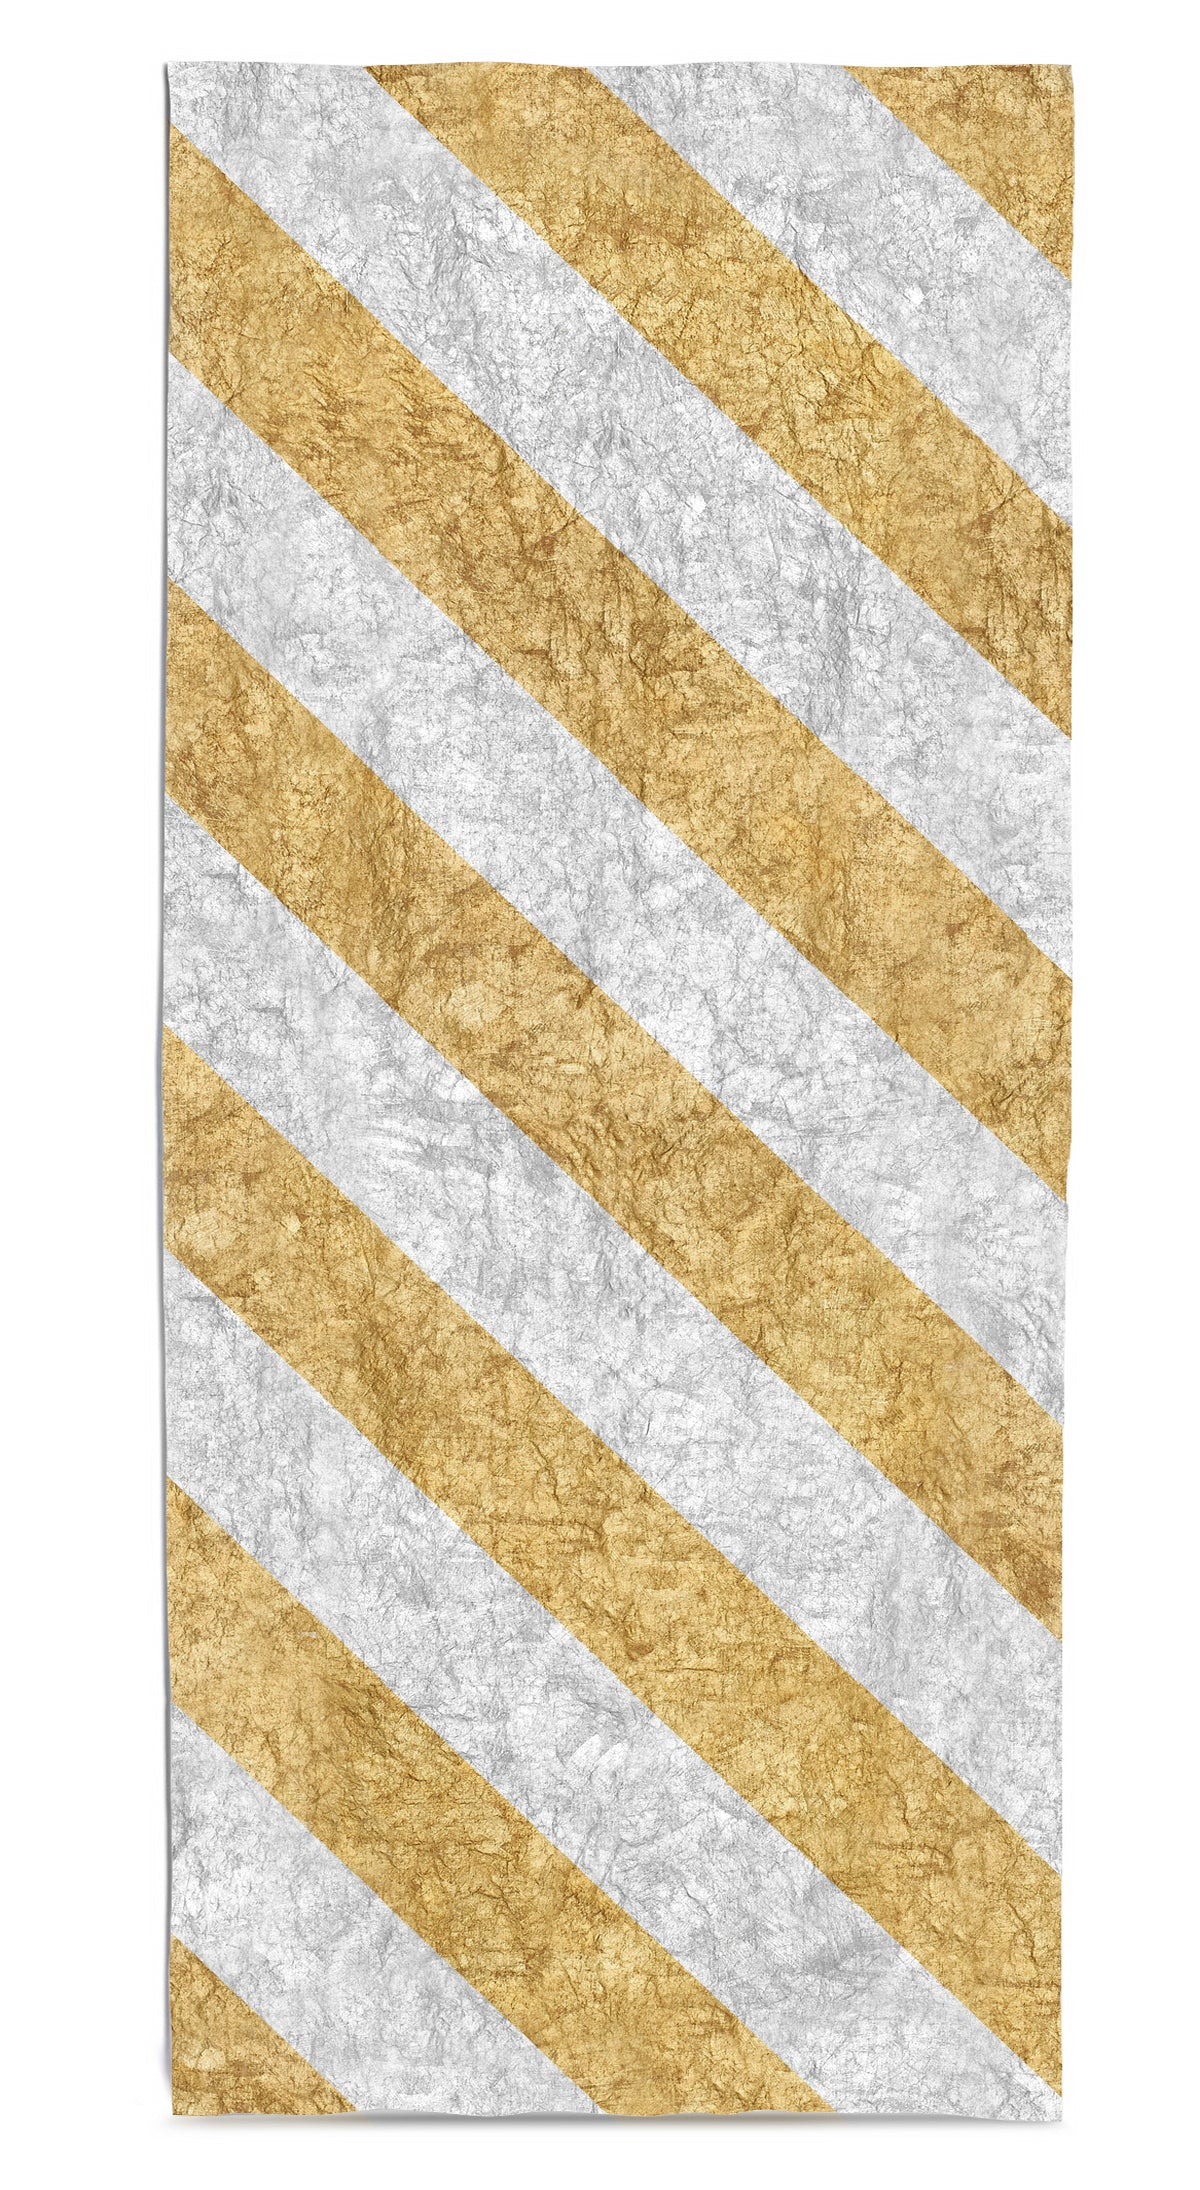 Stripe Linen Tablecloth in Gold & Silver